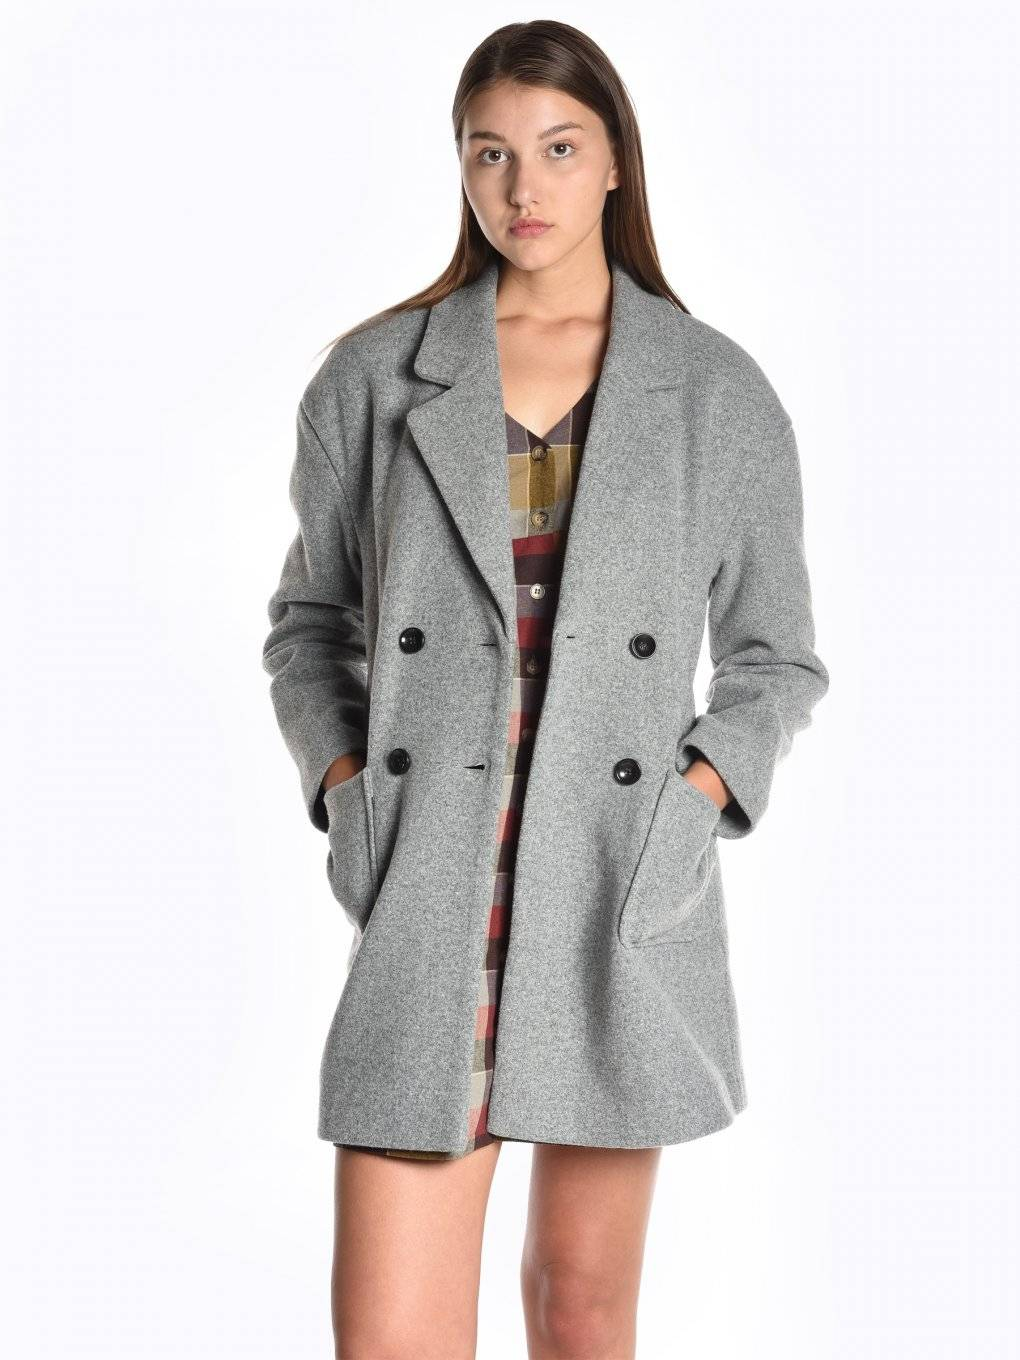 Oversized double brested wool coat